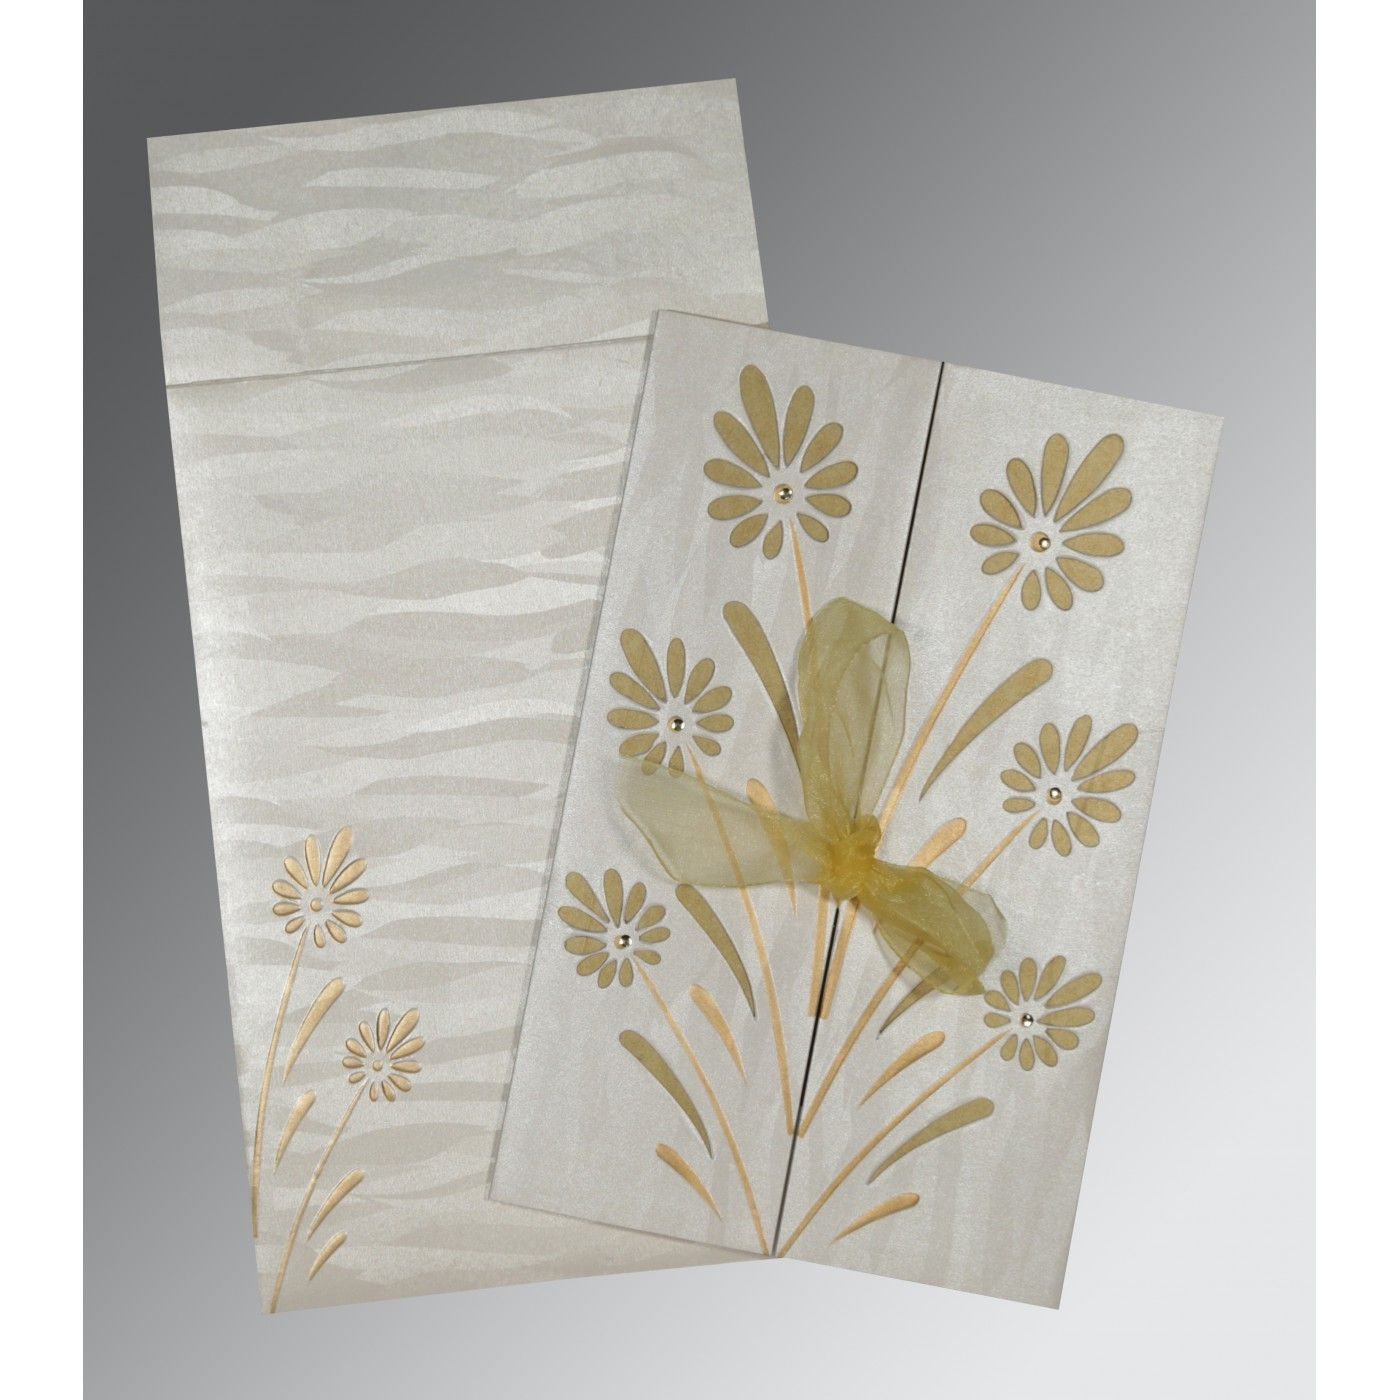 METALLIC SILVER SHIMMERY FLORAL THEMED - EMBOSSED WEDDING CARD : CW-1372 - IndianWeddingCards